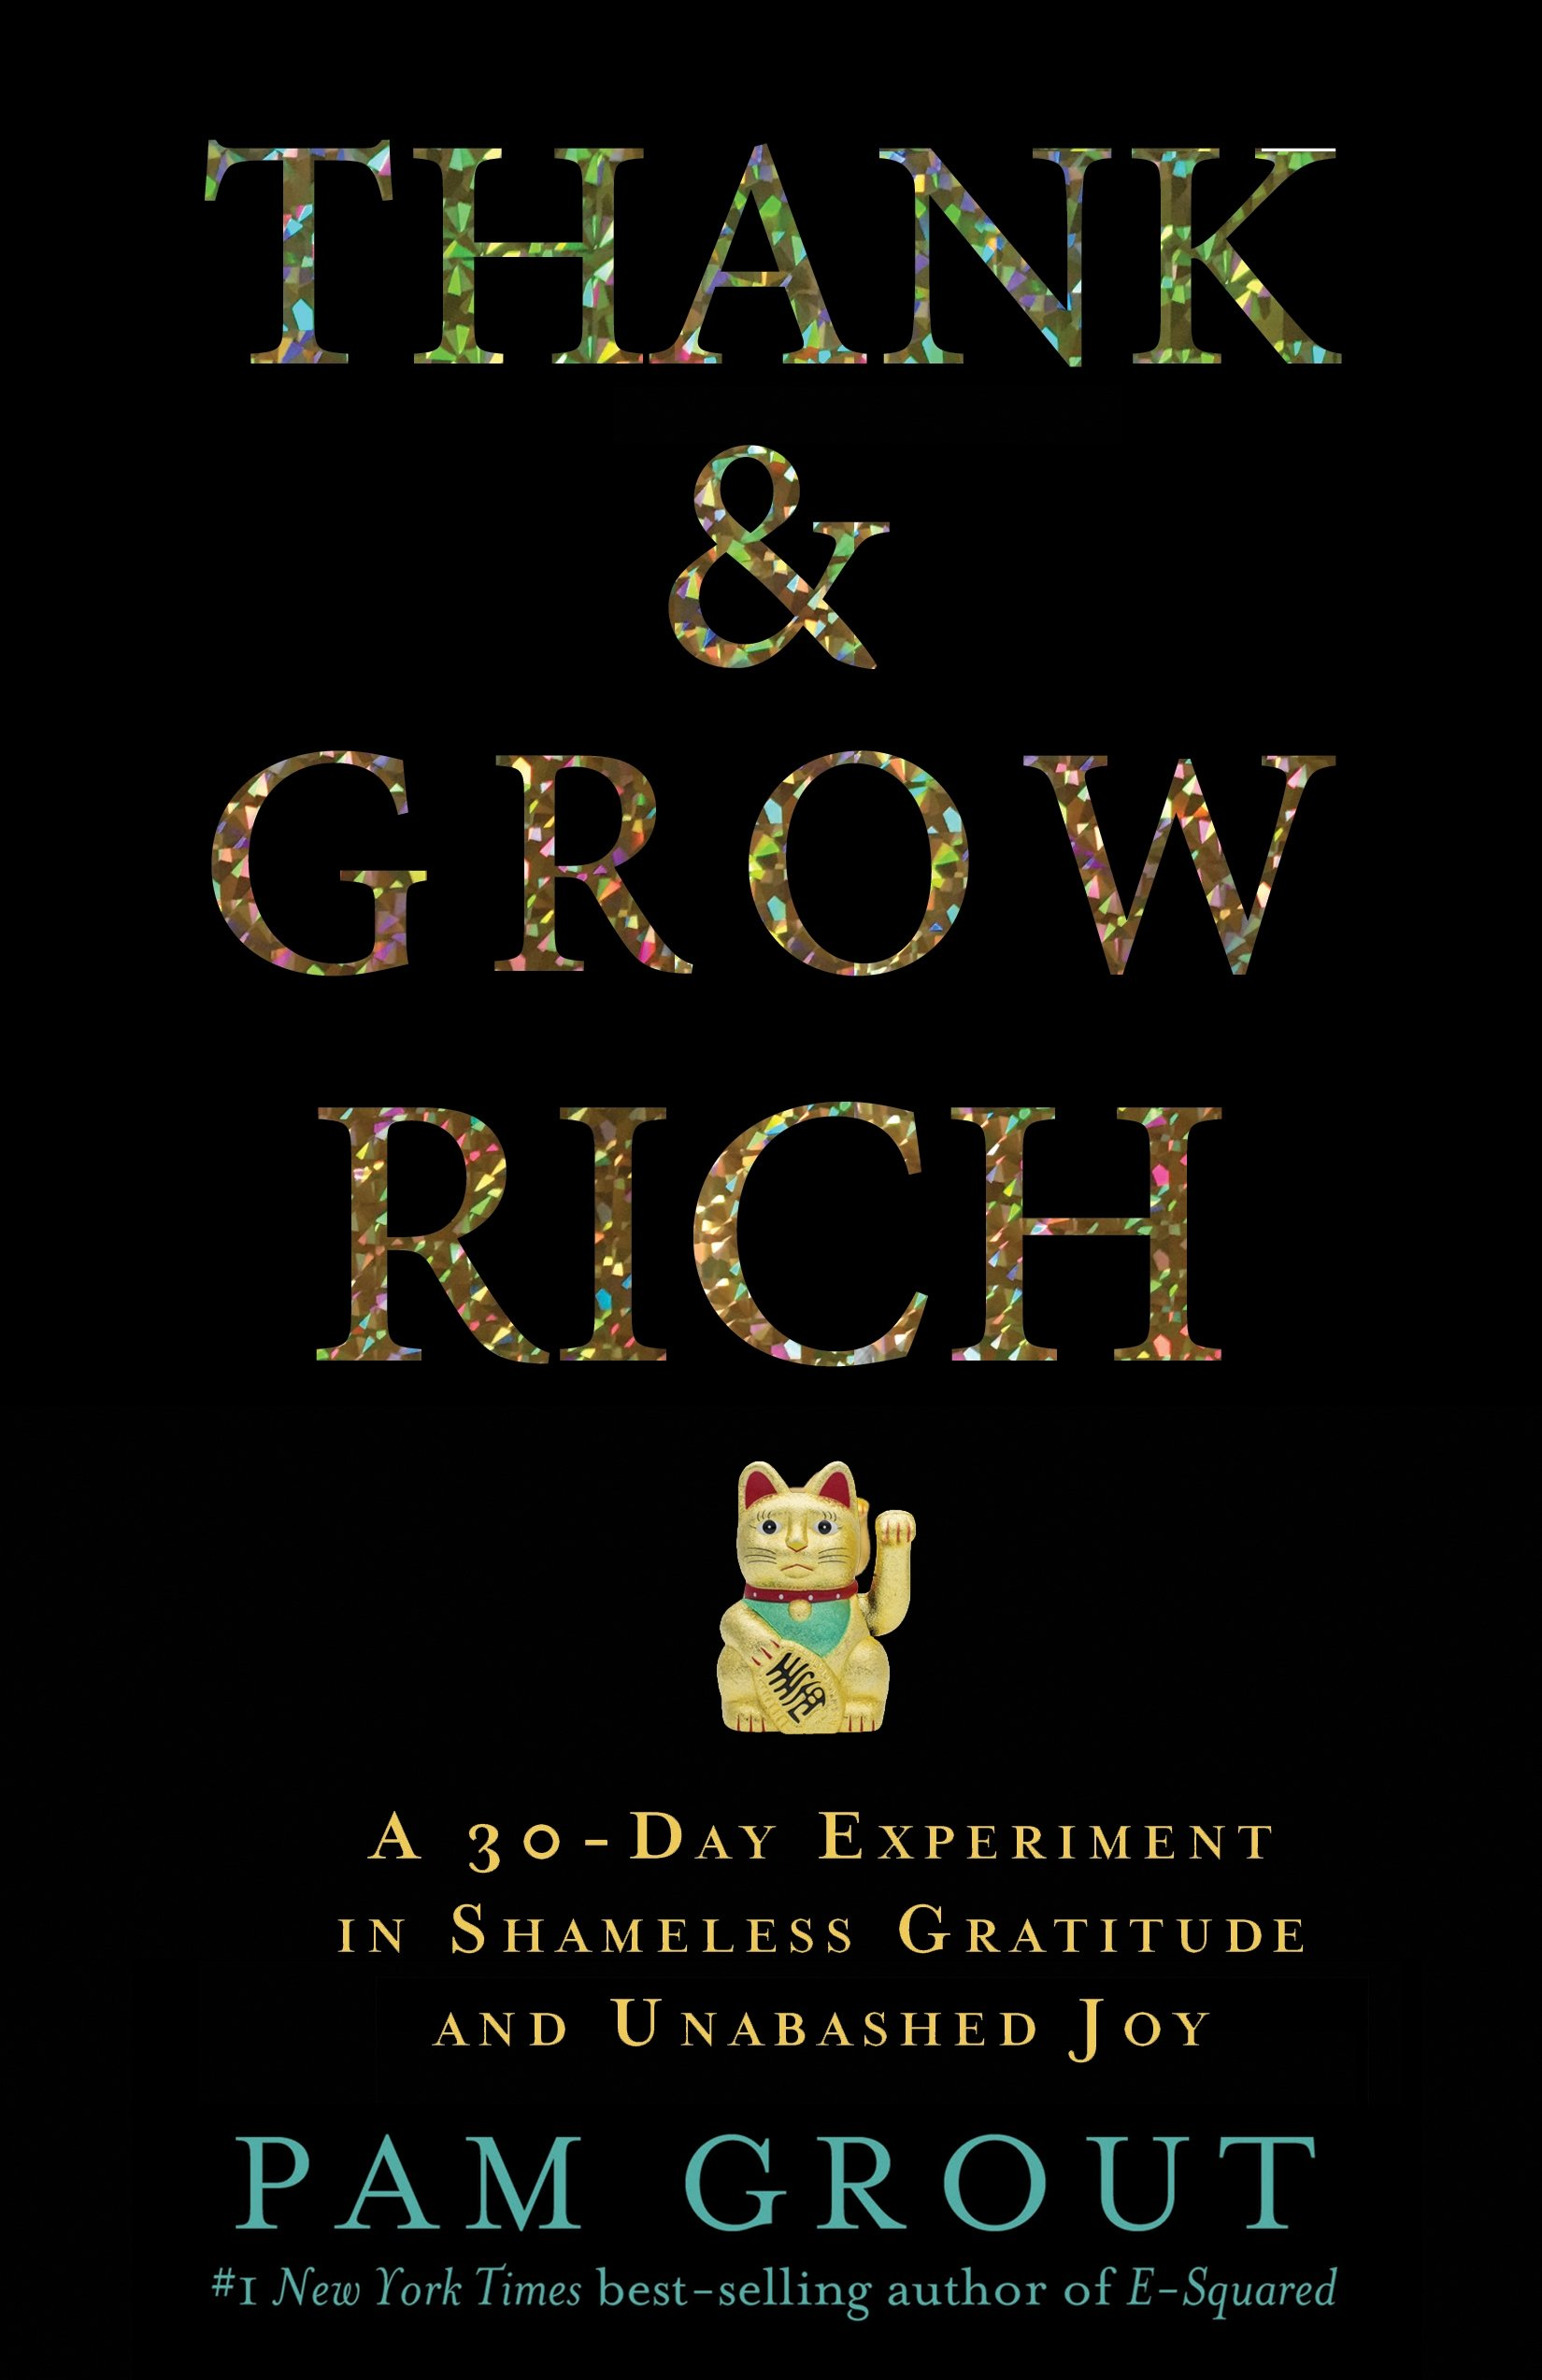 worksheet Think And Grow Rich Worksheet thank grow rich a 30 day experiment in shameless gratitude and unabashed joy pam grout 9781401949846 amazon com books